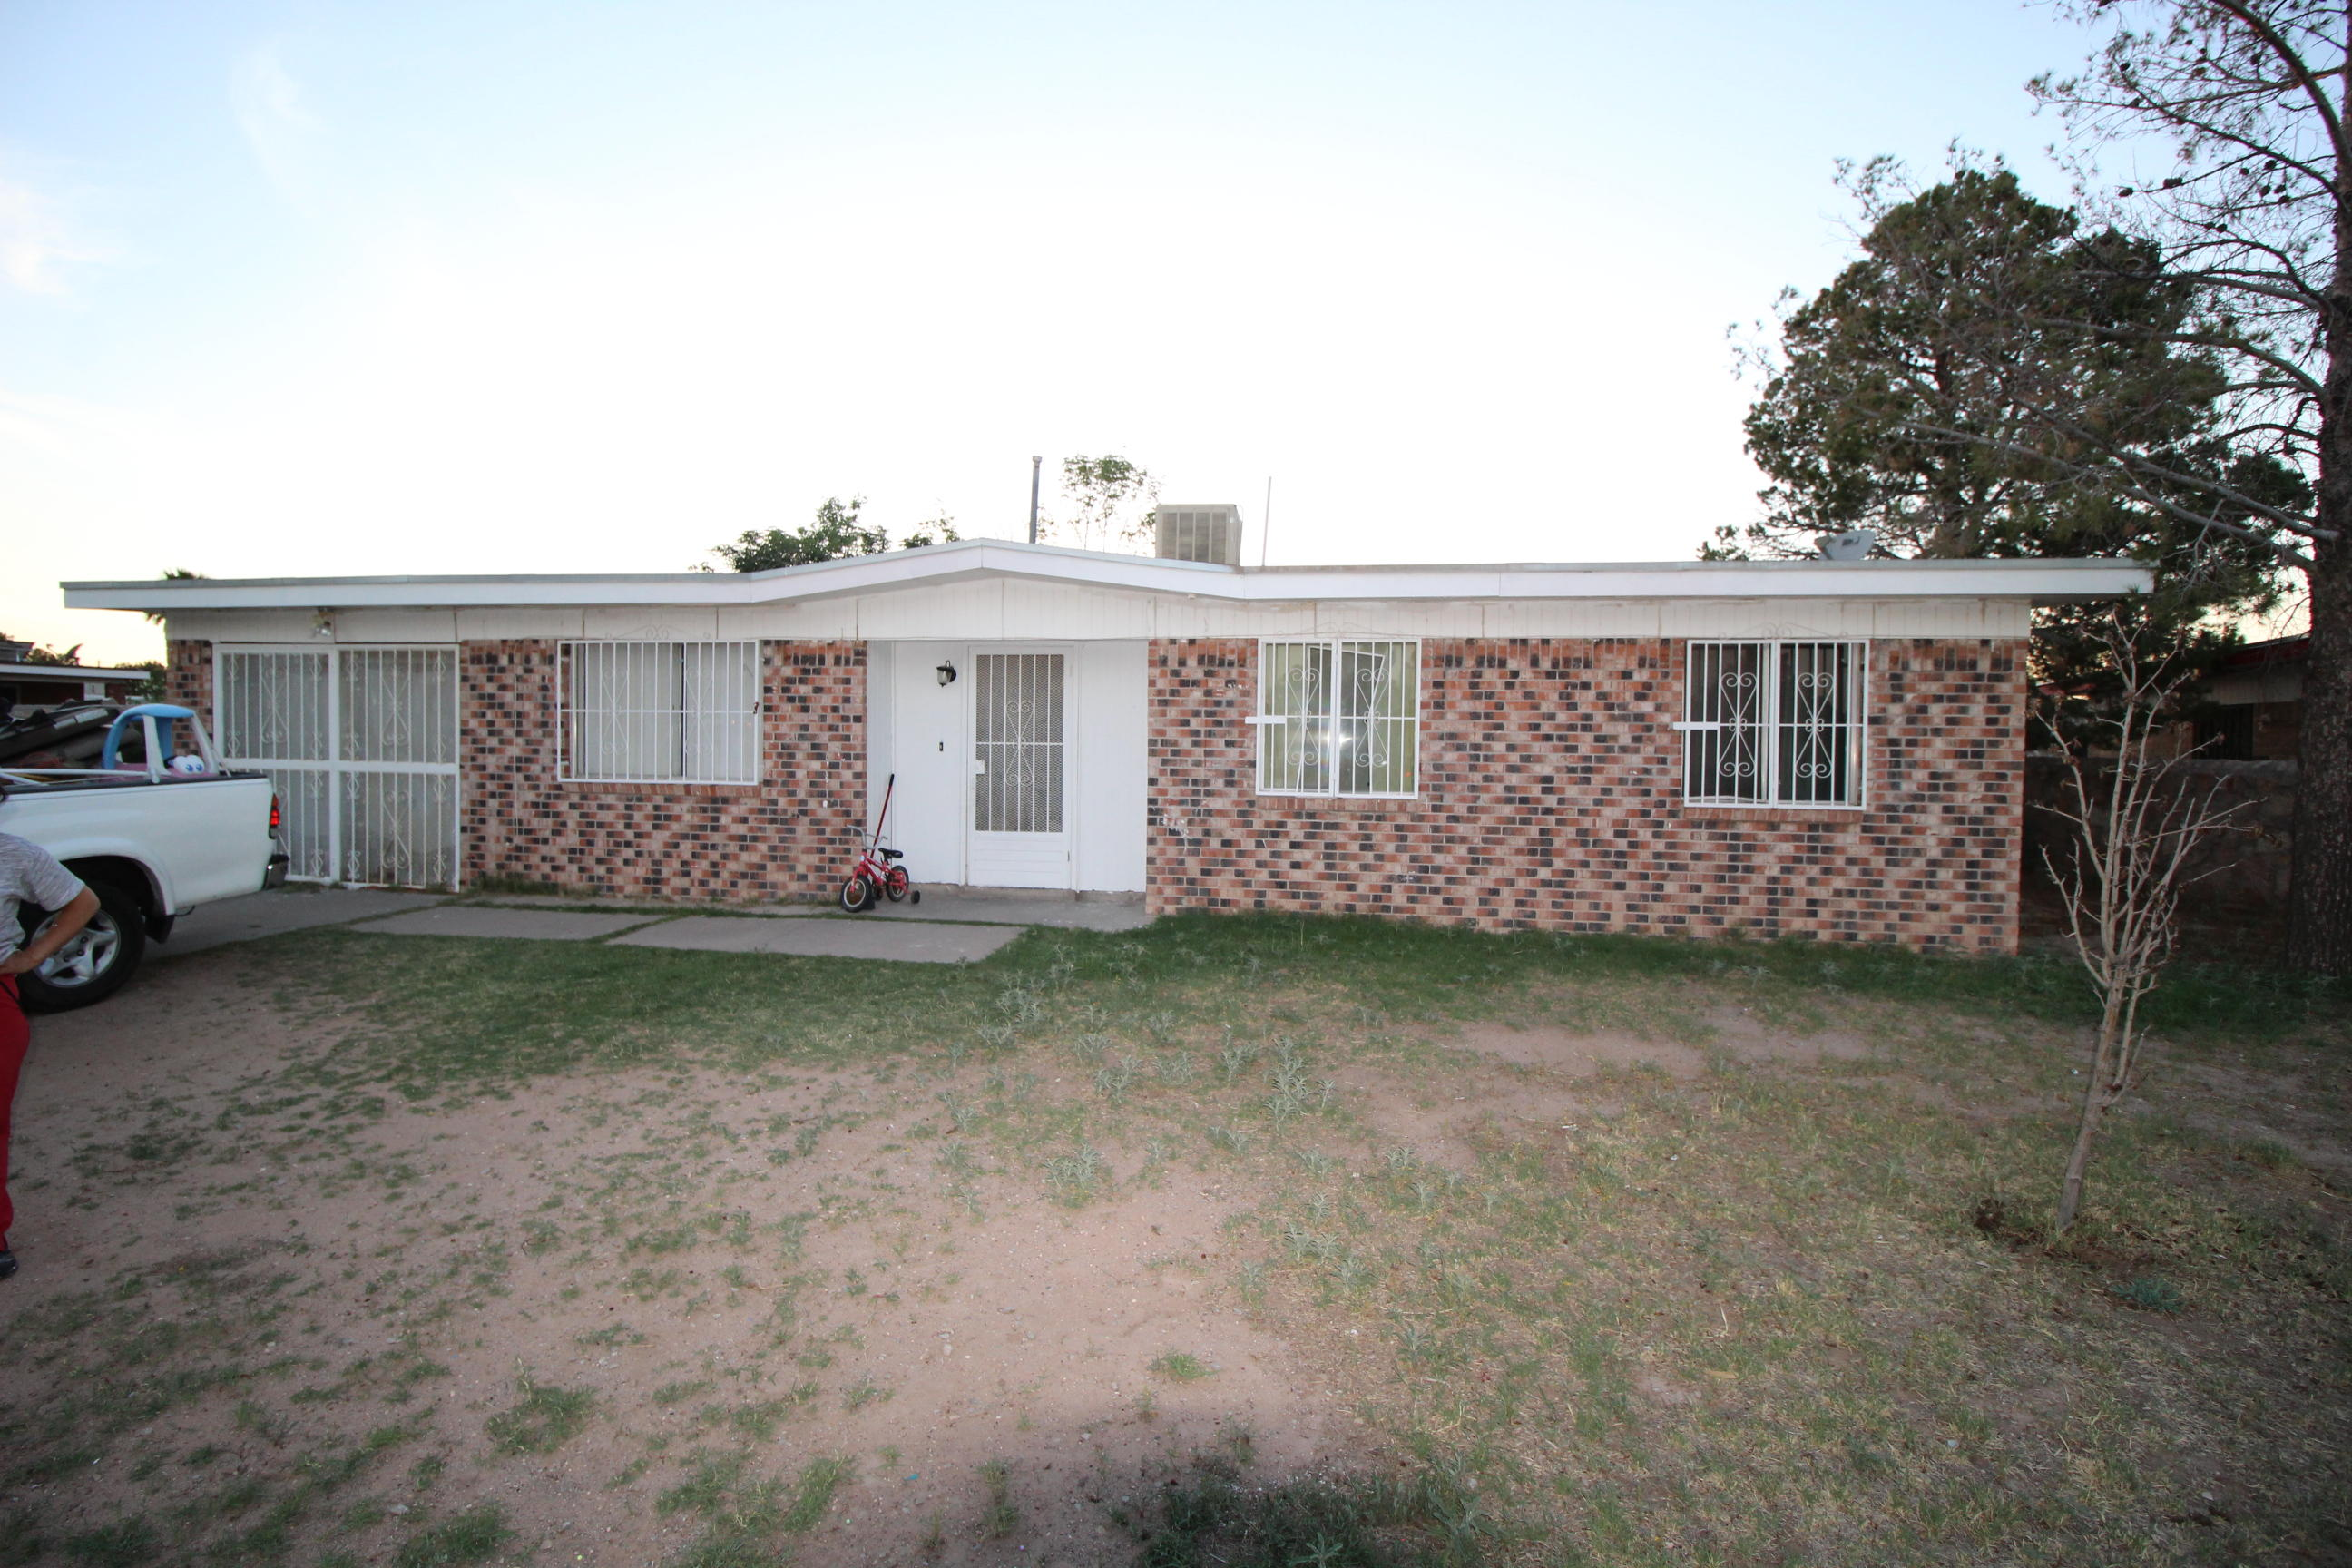 611 HAVERHILL, El Paso, Texas 79907, 3 Bedrooms Bedrooms, ,2 BathroomsBathrooms,Residential,For sale,HAVERHILL,810567